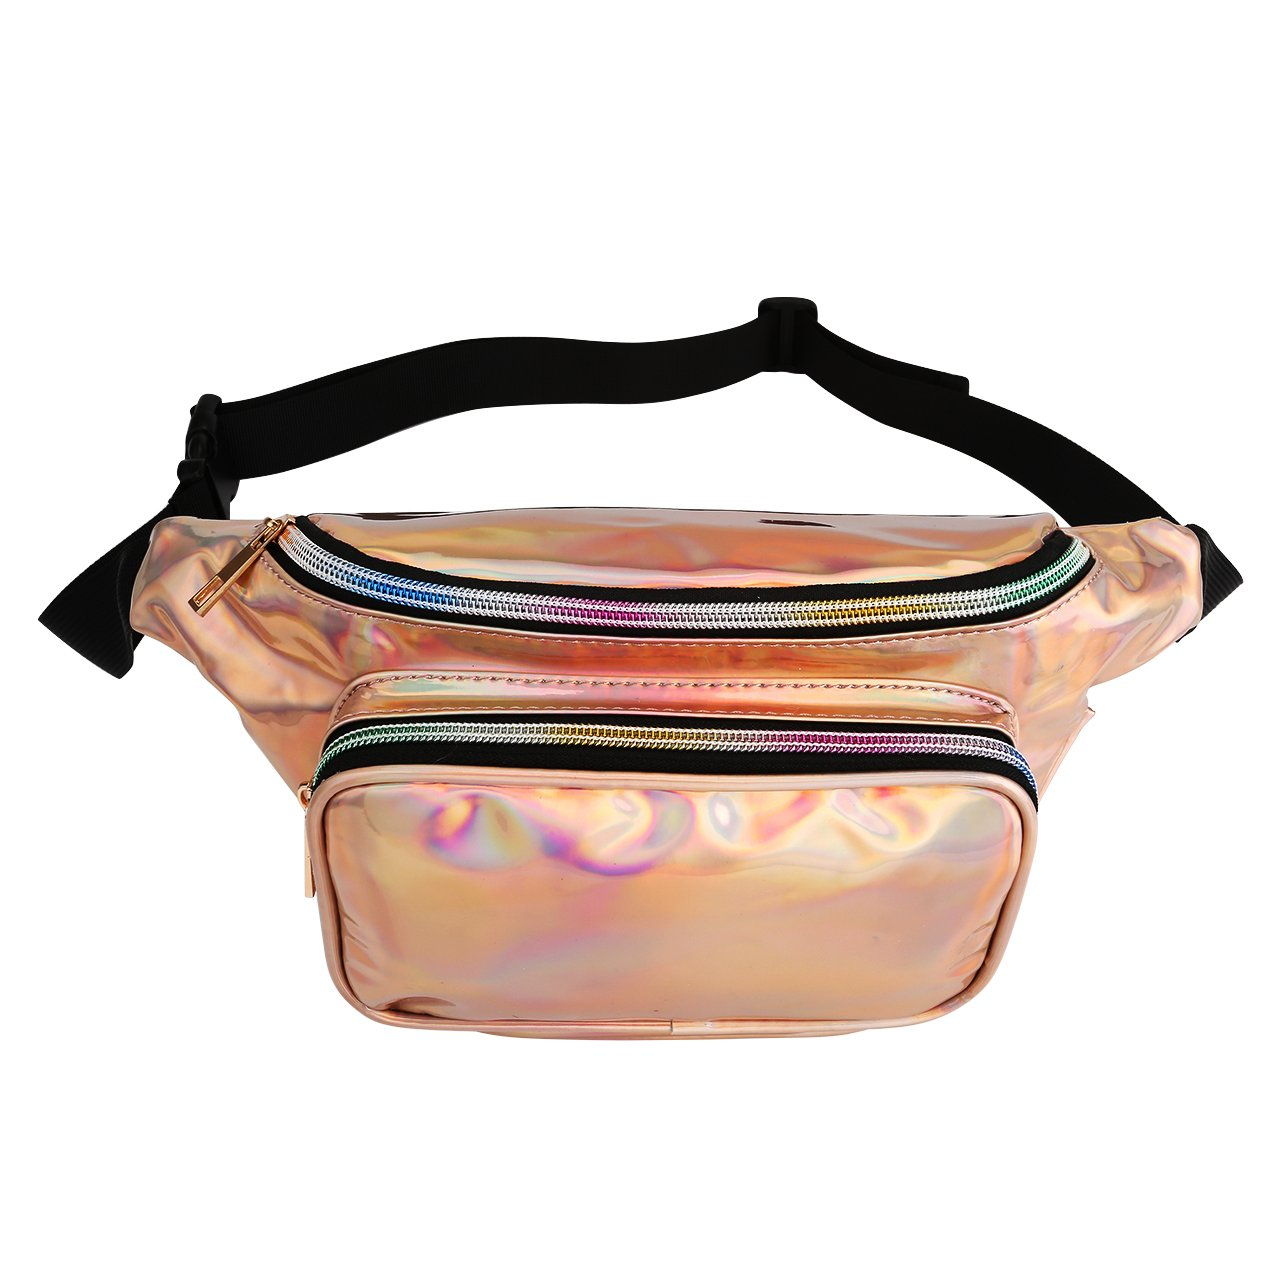 Ayliss Laser Fanny Pack Waist Bag Hologram Bum Bag Waterproof Beach Bag,Champagne